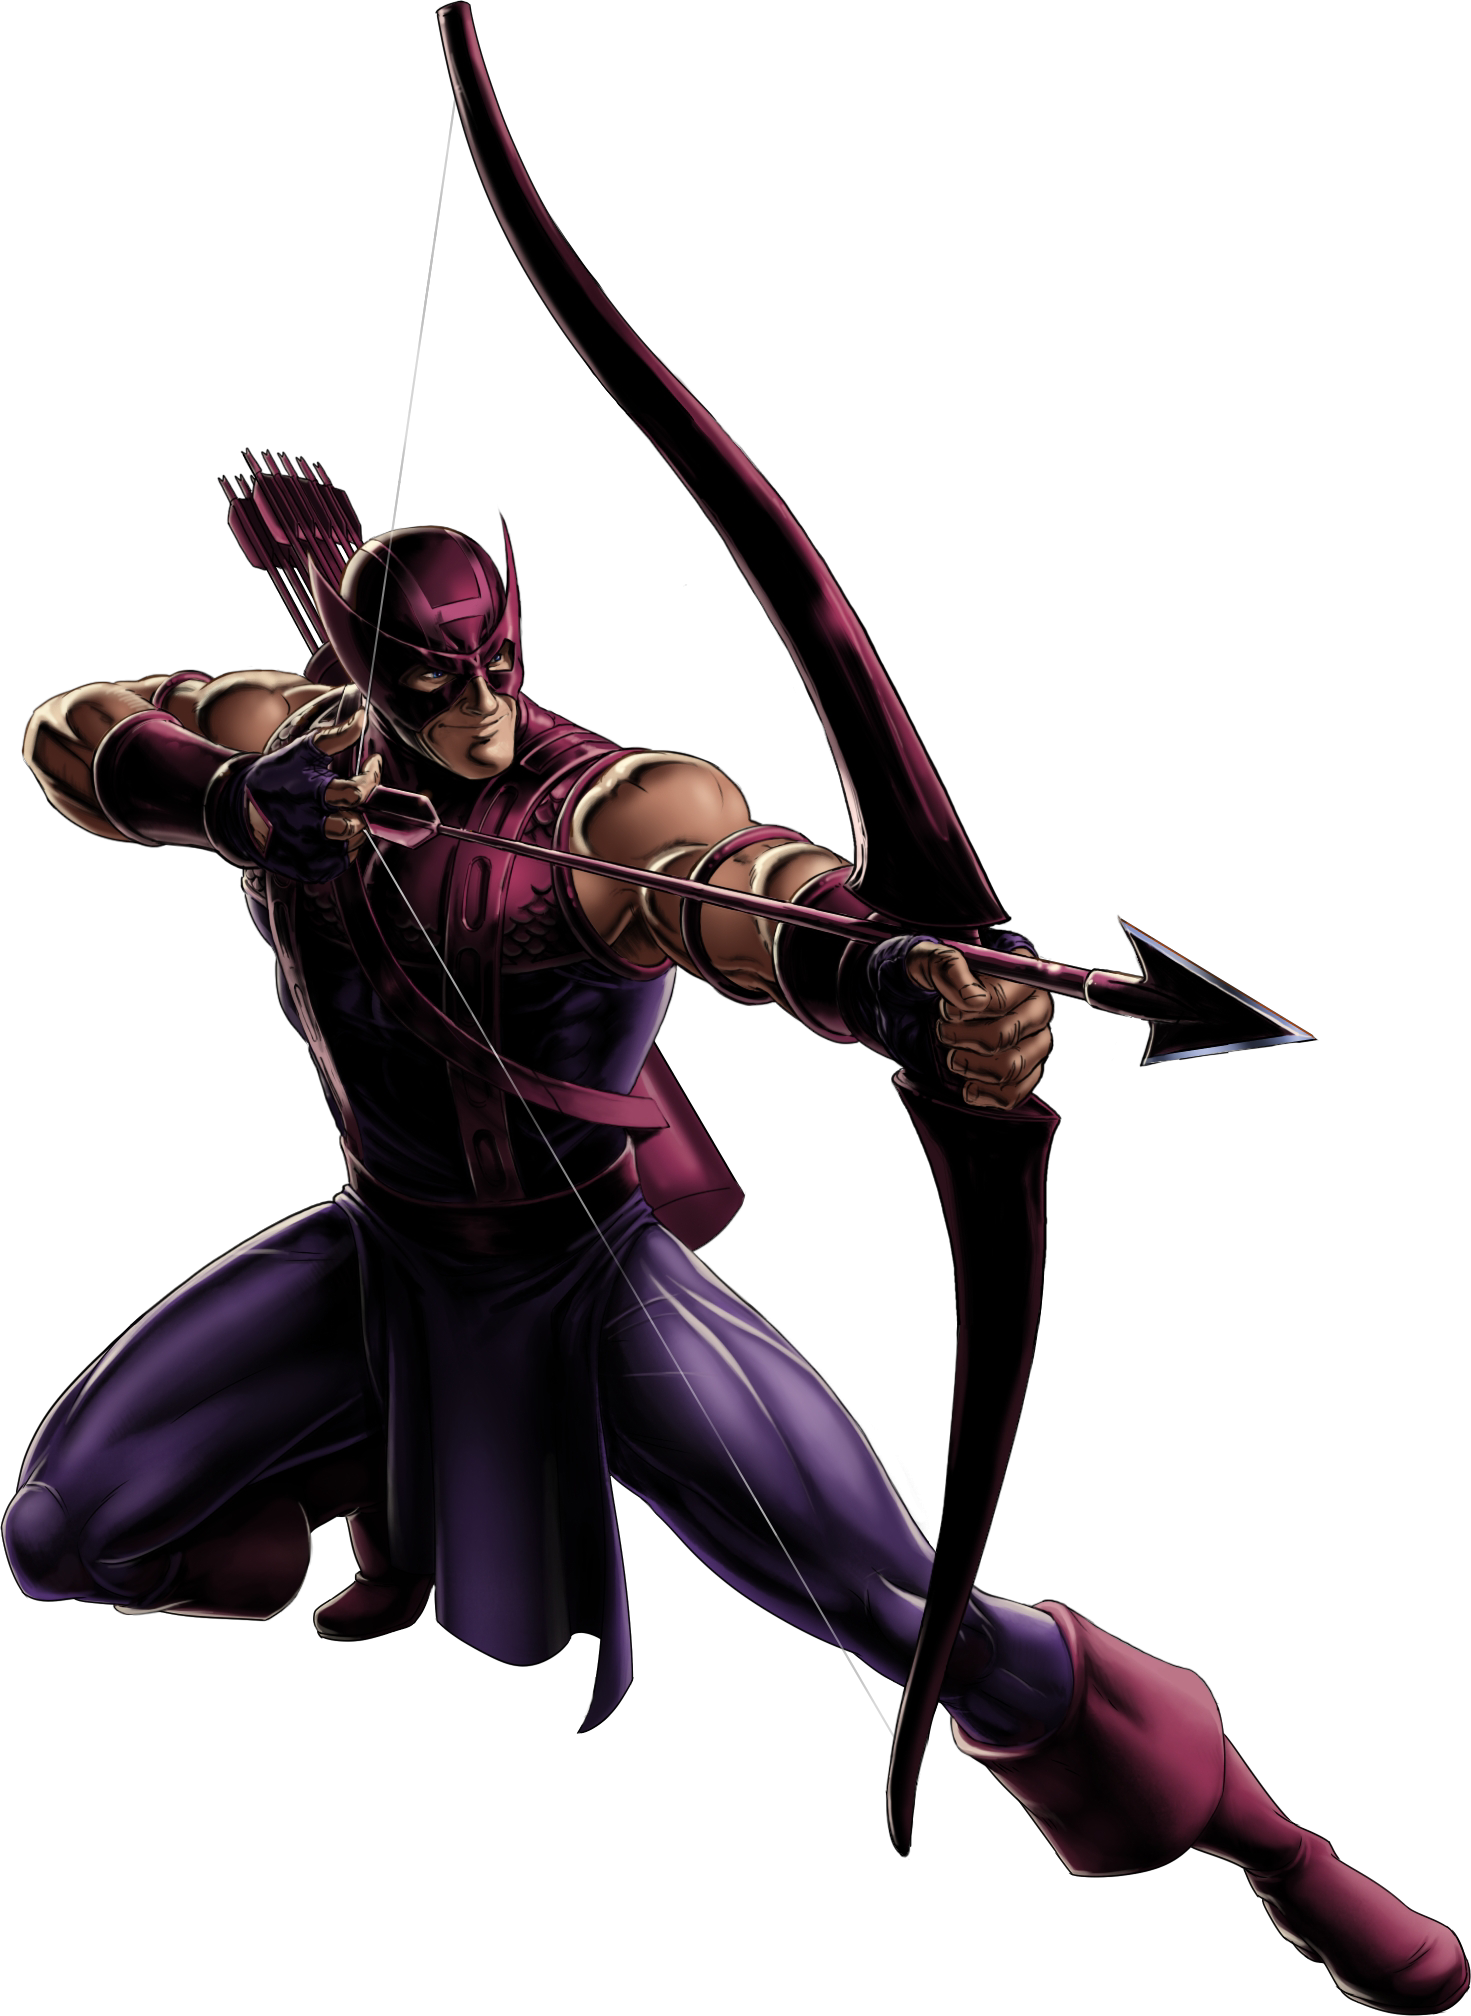 PNG File Name: Hawkeye Transparent Background - Hawkeye PNG